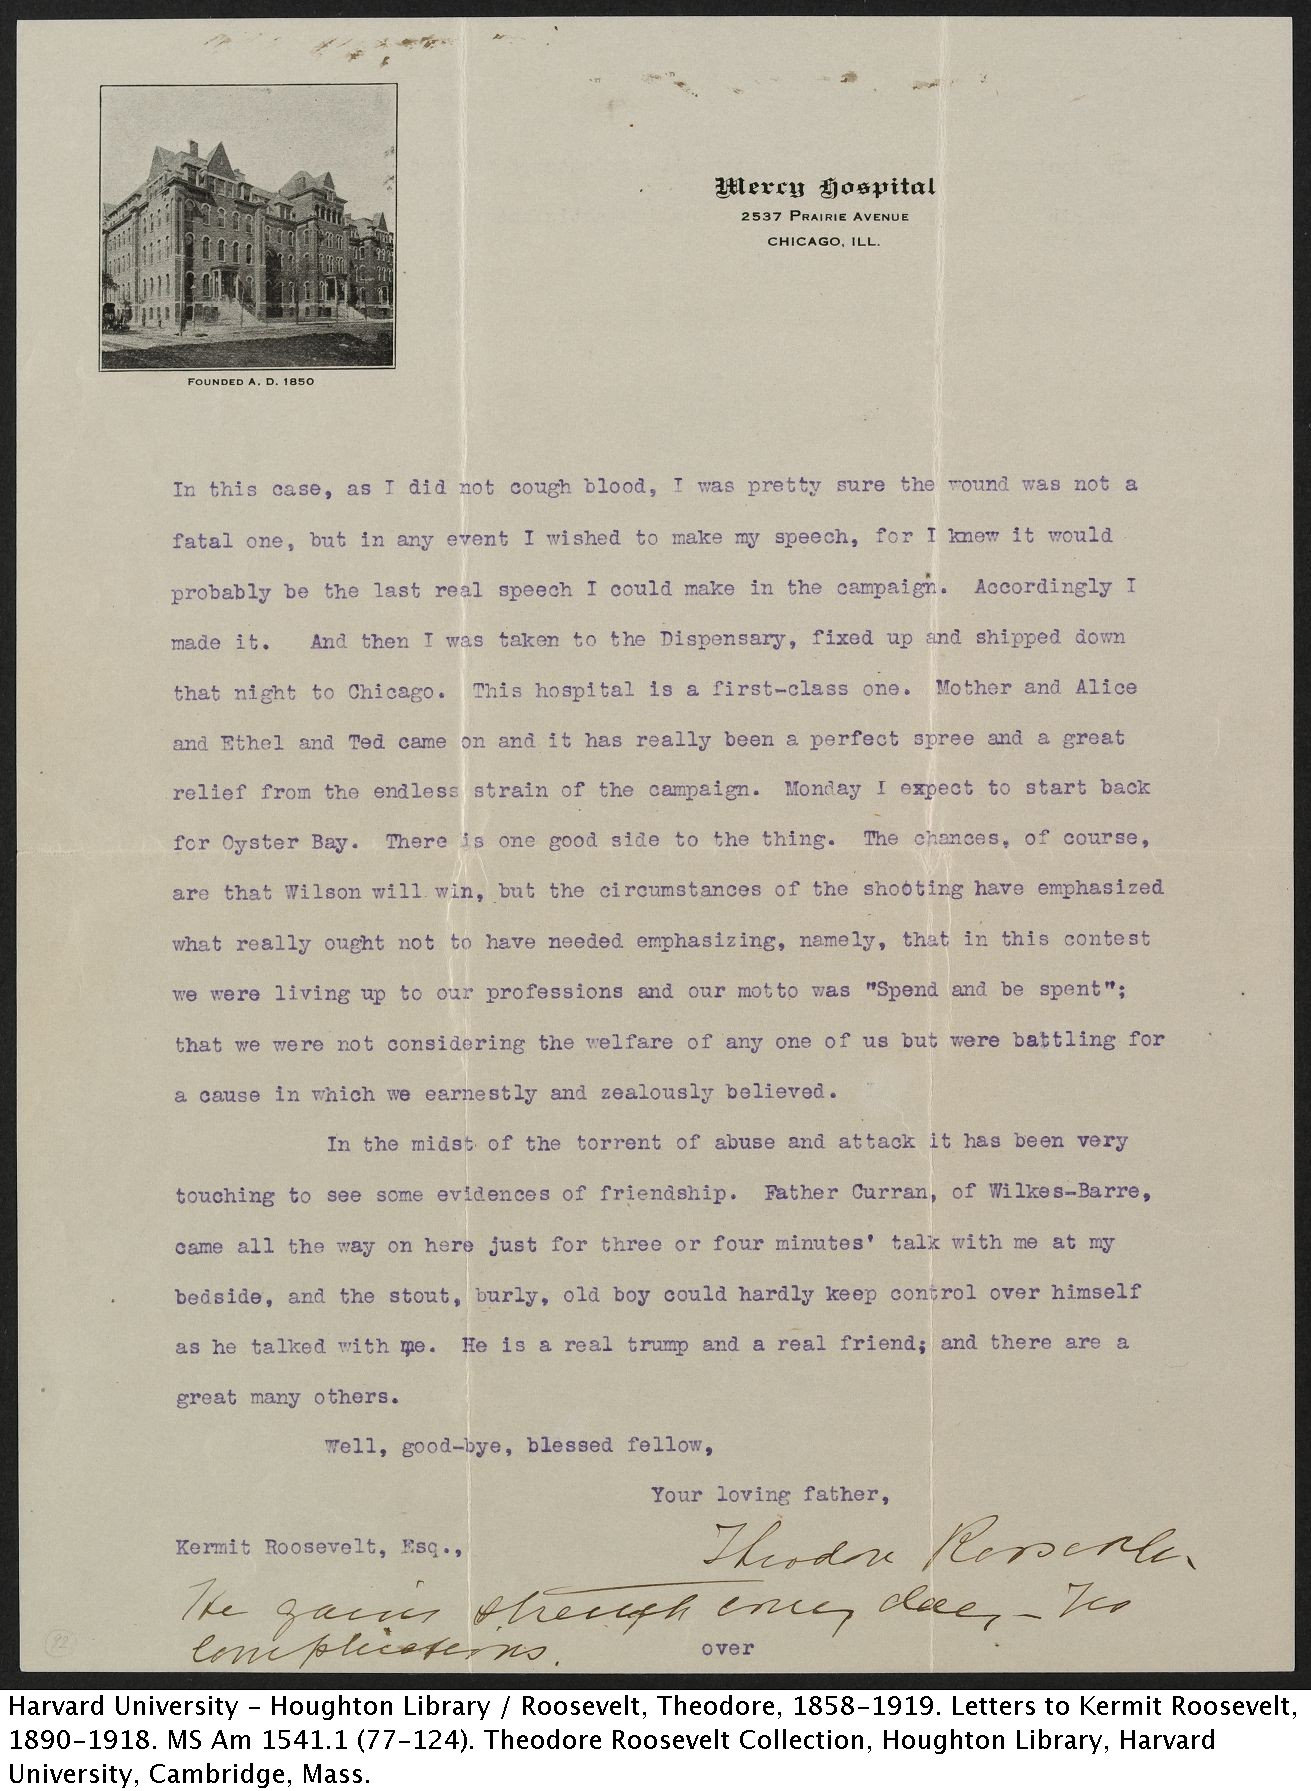 Theodore Roosevelt to Kermit Roosevelt, October 19, 1912. MS Am 1541.1 (92) p.2